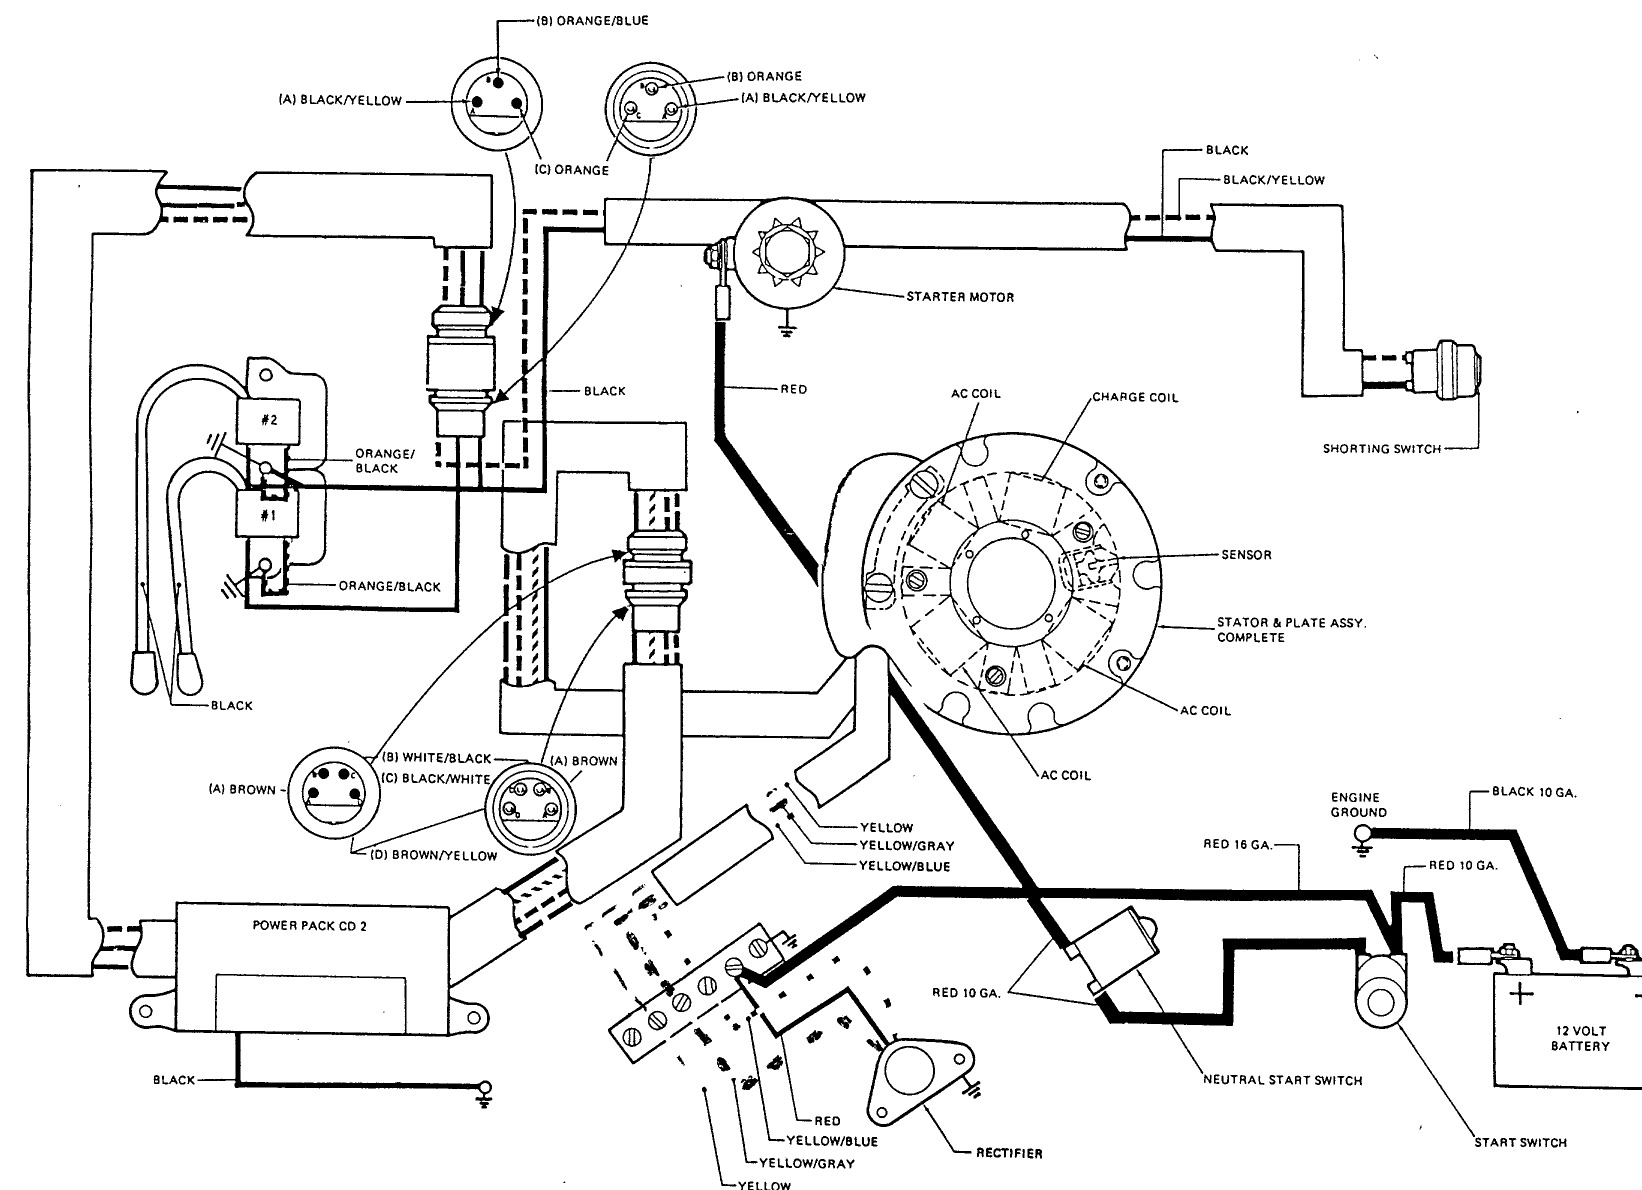 Maintaining Johnson Evinrude 9 Electric Motors Wiring Diagram Additionally Motor Electrical For Starter